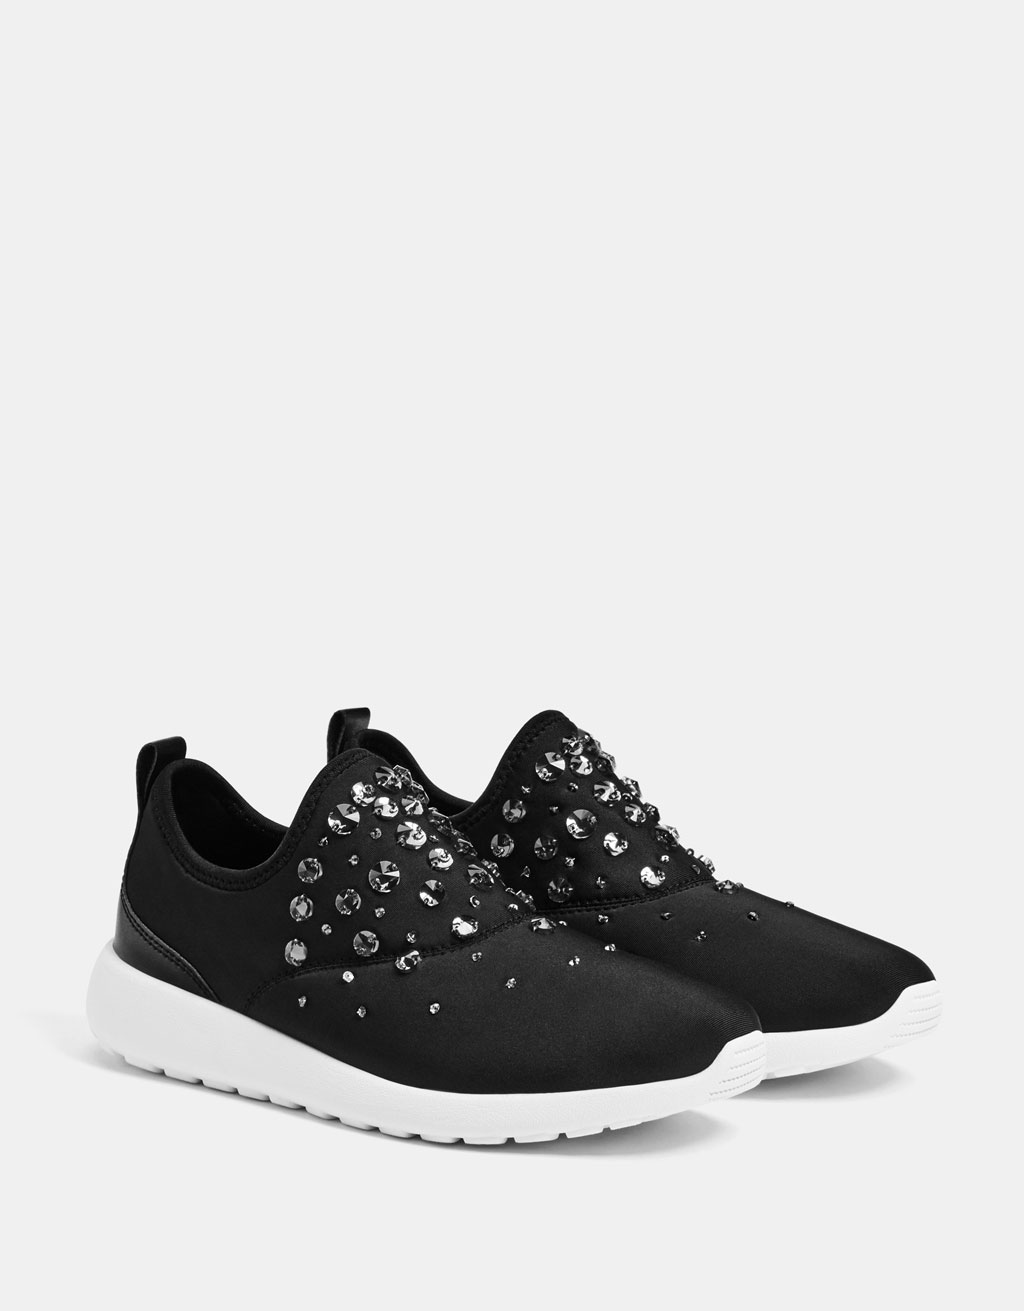 Bejewelled technical sneakers